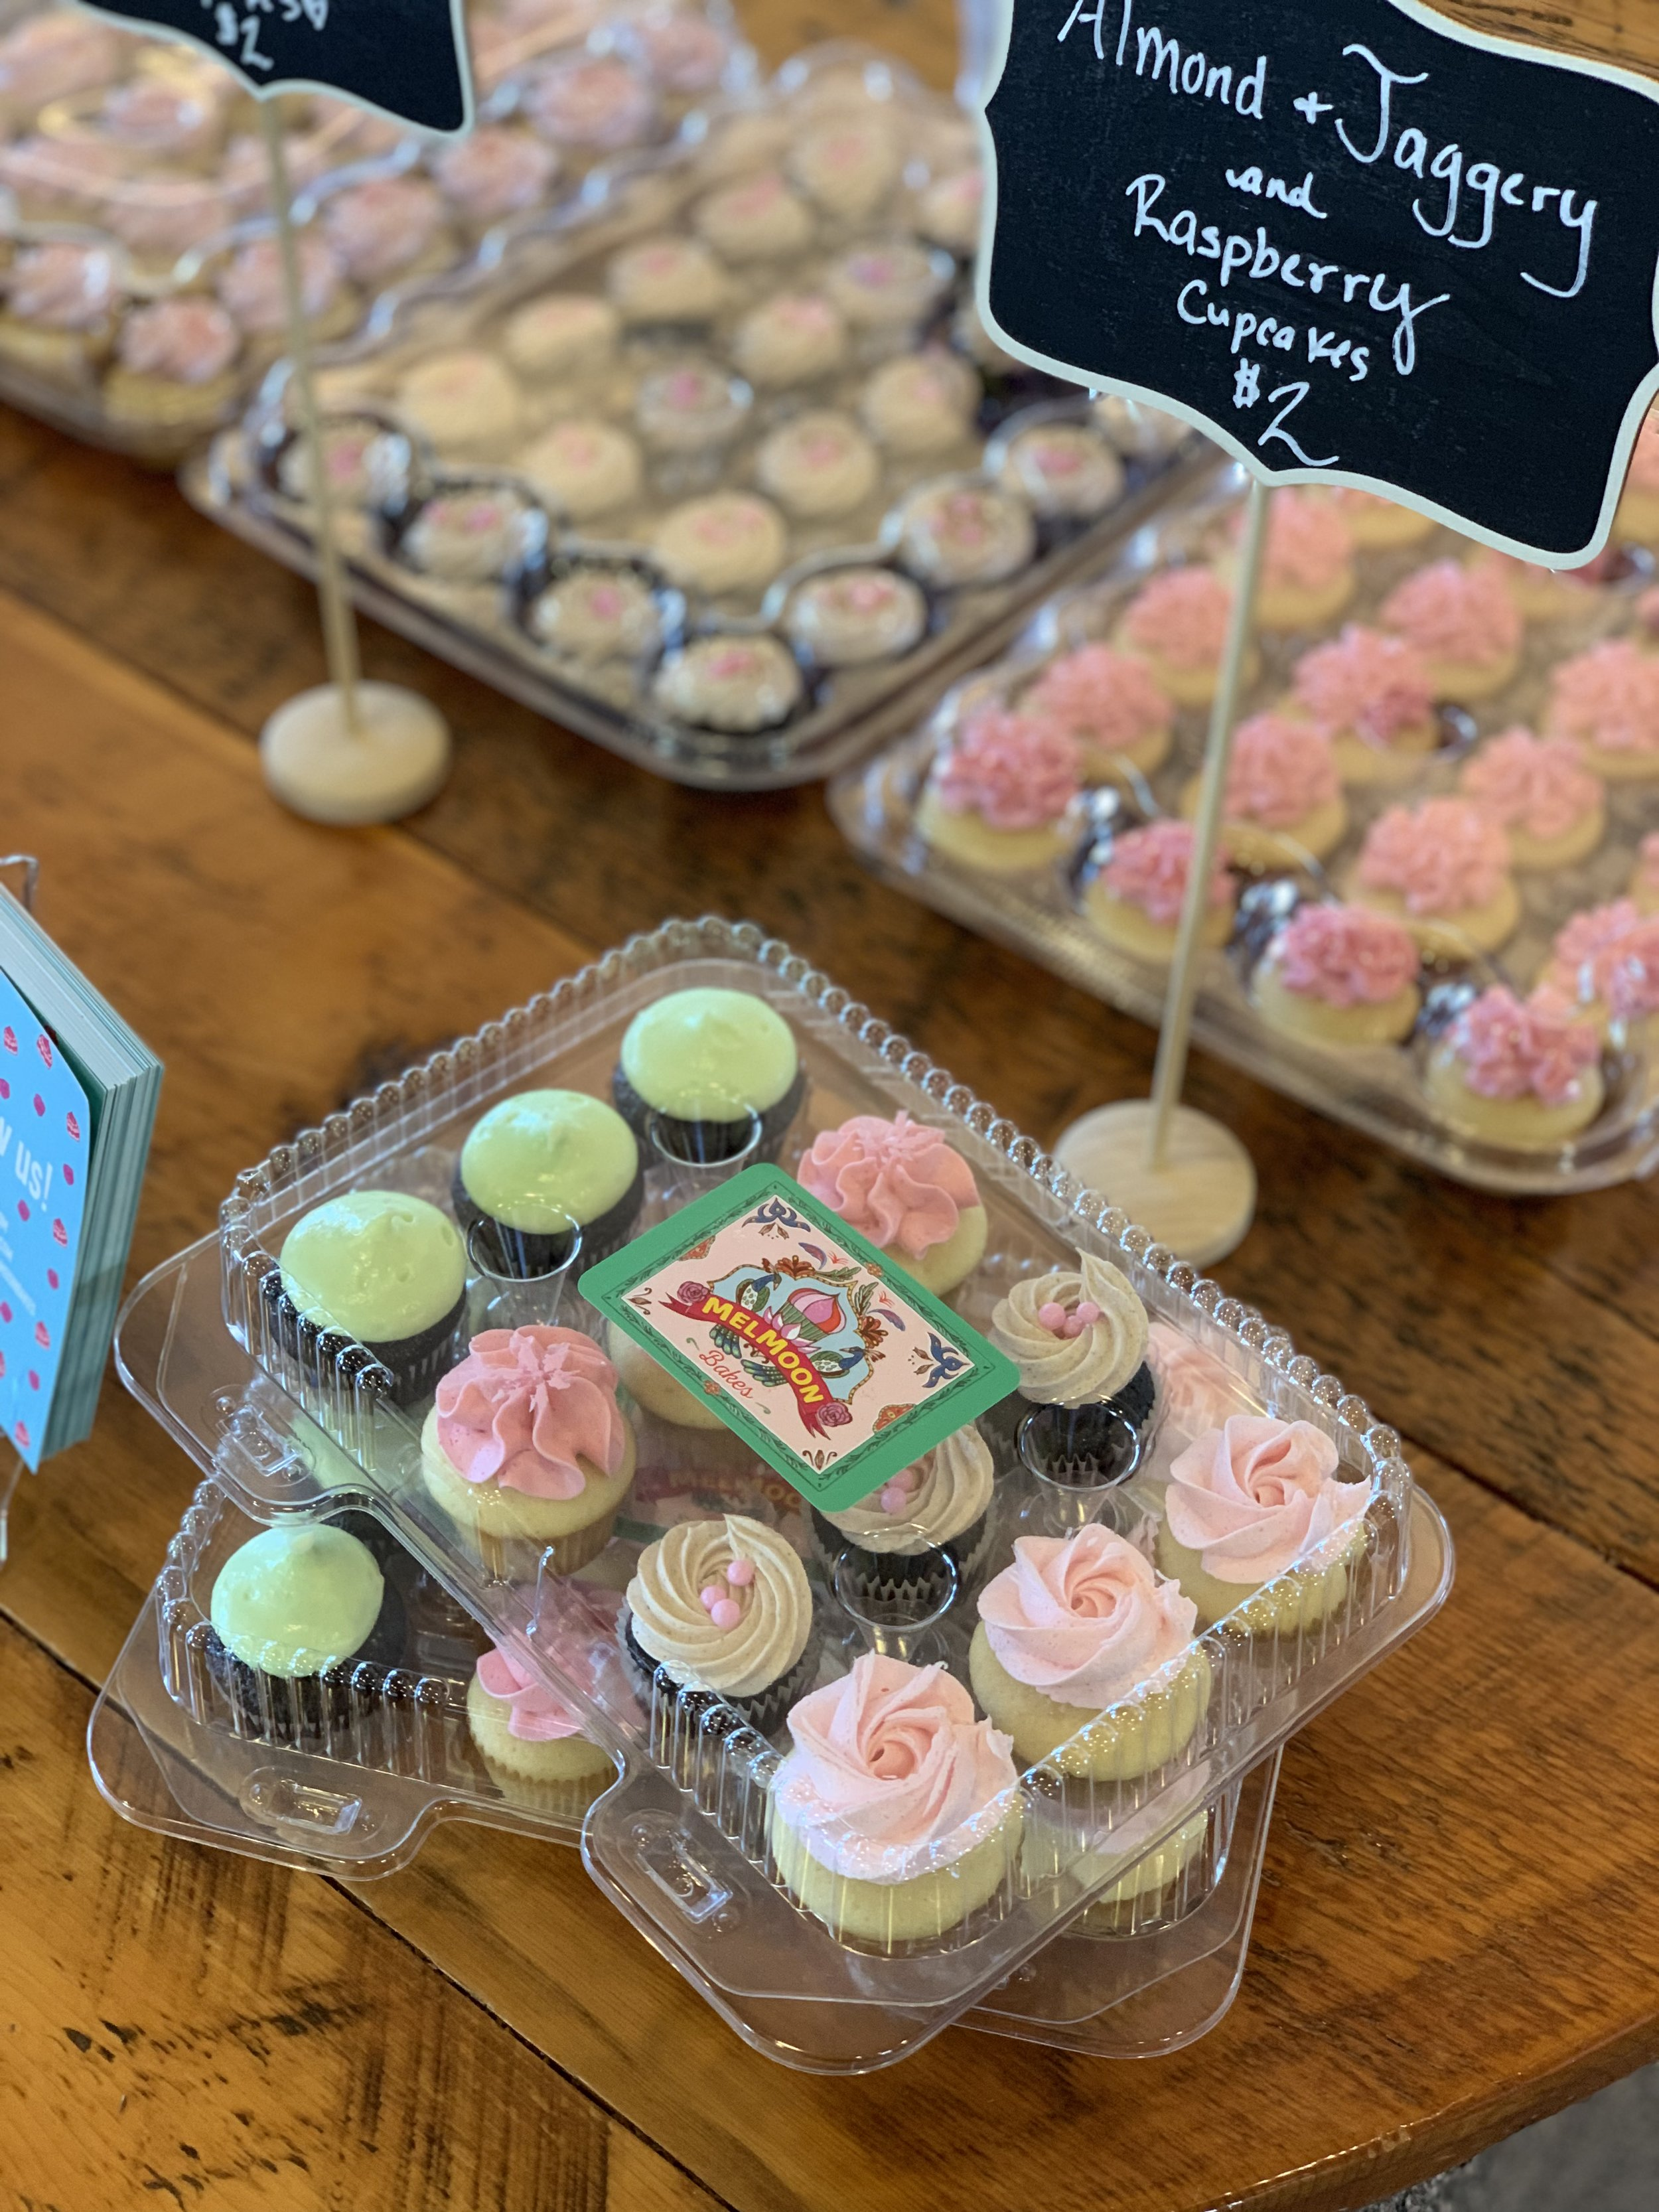 Pop-Up Market at AdRoll in San Francisco - February 2019